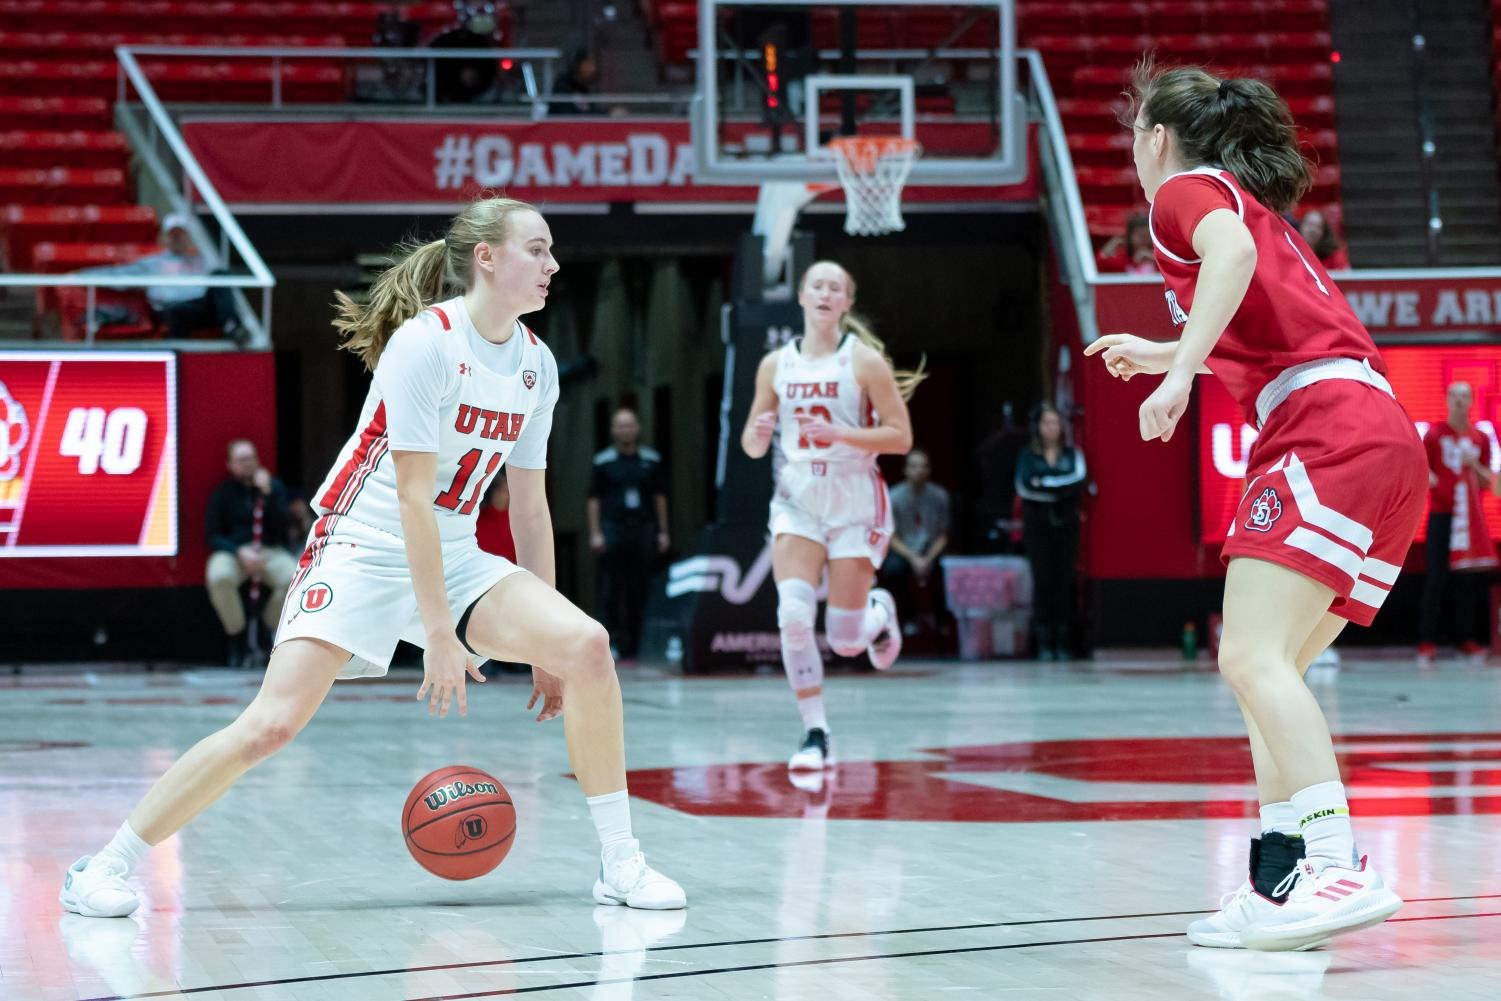 University of Utah Utes Women's Basketball Team Guard Bryanna Maxwell (11) looks to pass the ball during an NCAA Basketball match vs. the South Dakota Coyotes at the Jon M. Huntsman Center in Salt Lake City, Utah on Saturday, Nov. 16, 2019. (Photo by Abu Asib | The Daily Utah Chronicle)